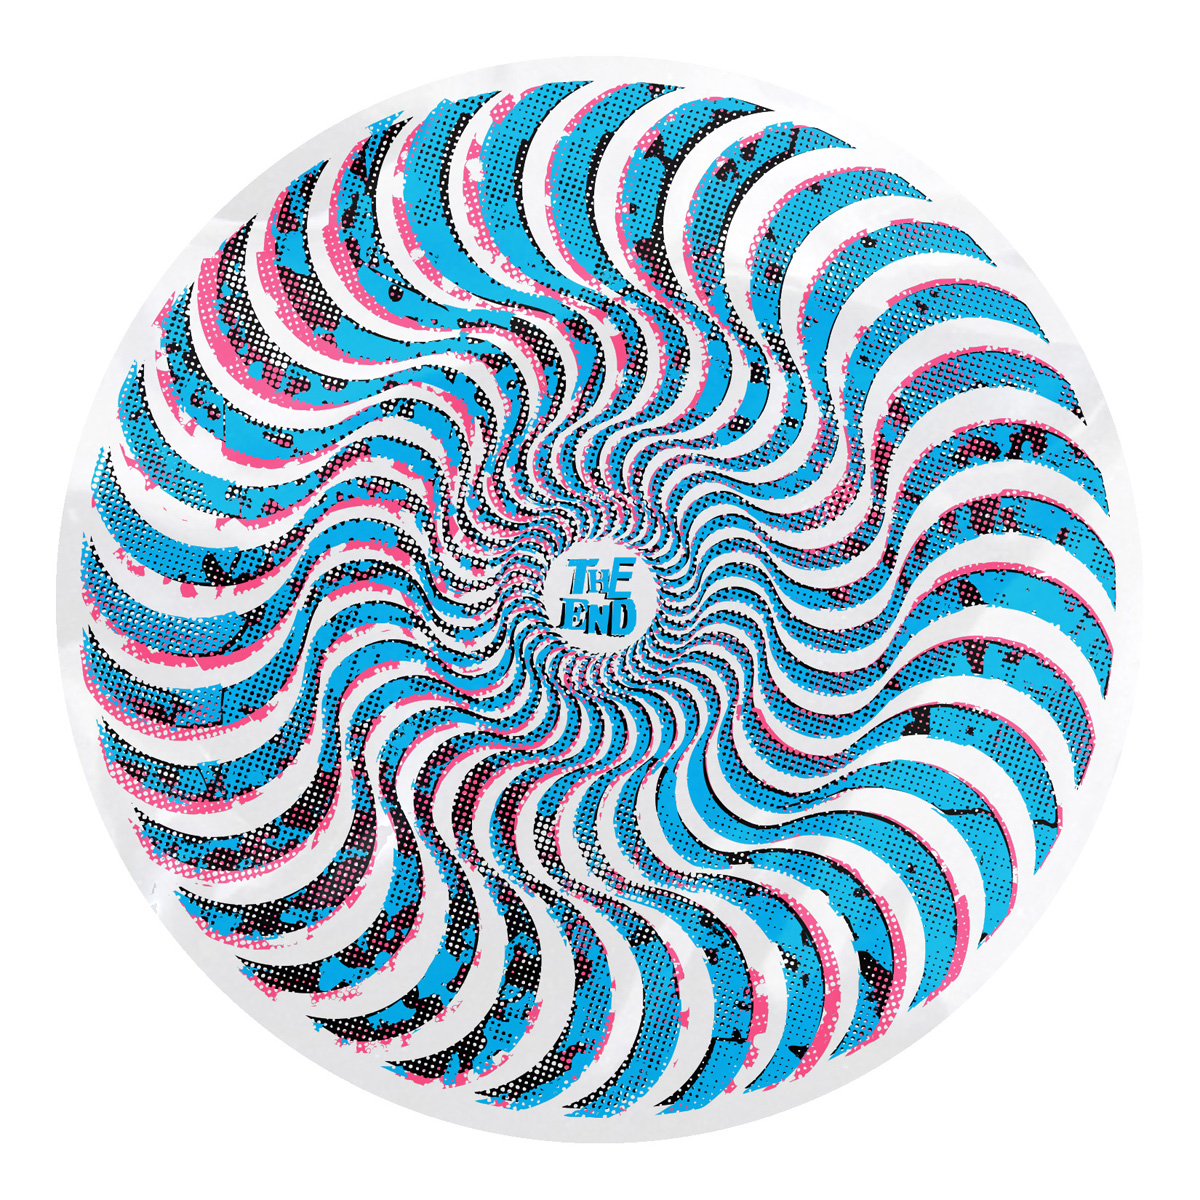 SF STKR NEVERMIND SWIRL 10PK - Click to enlarge